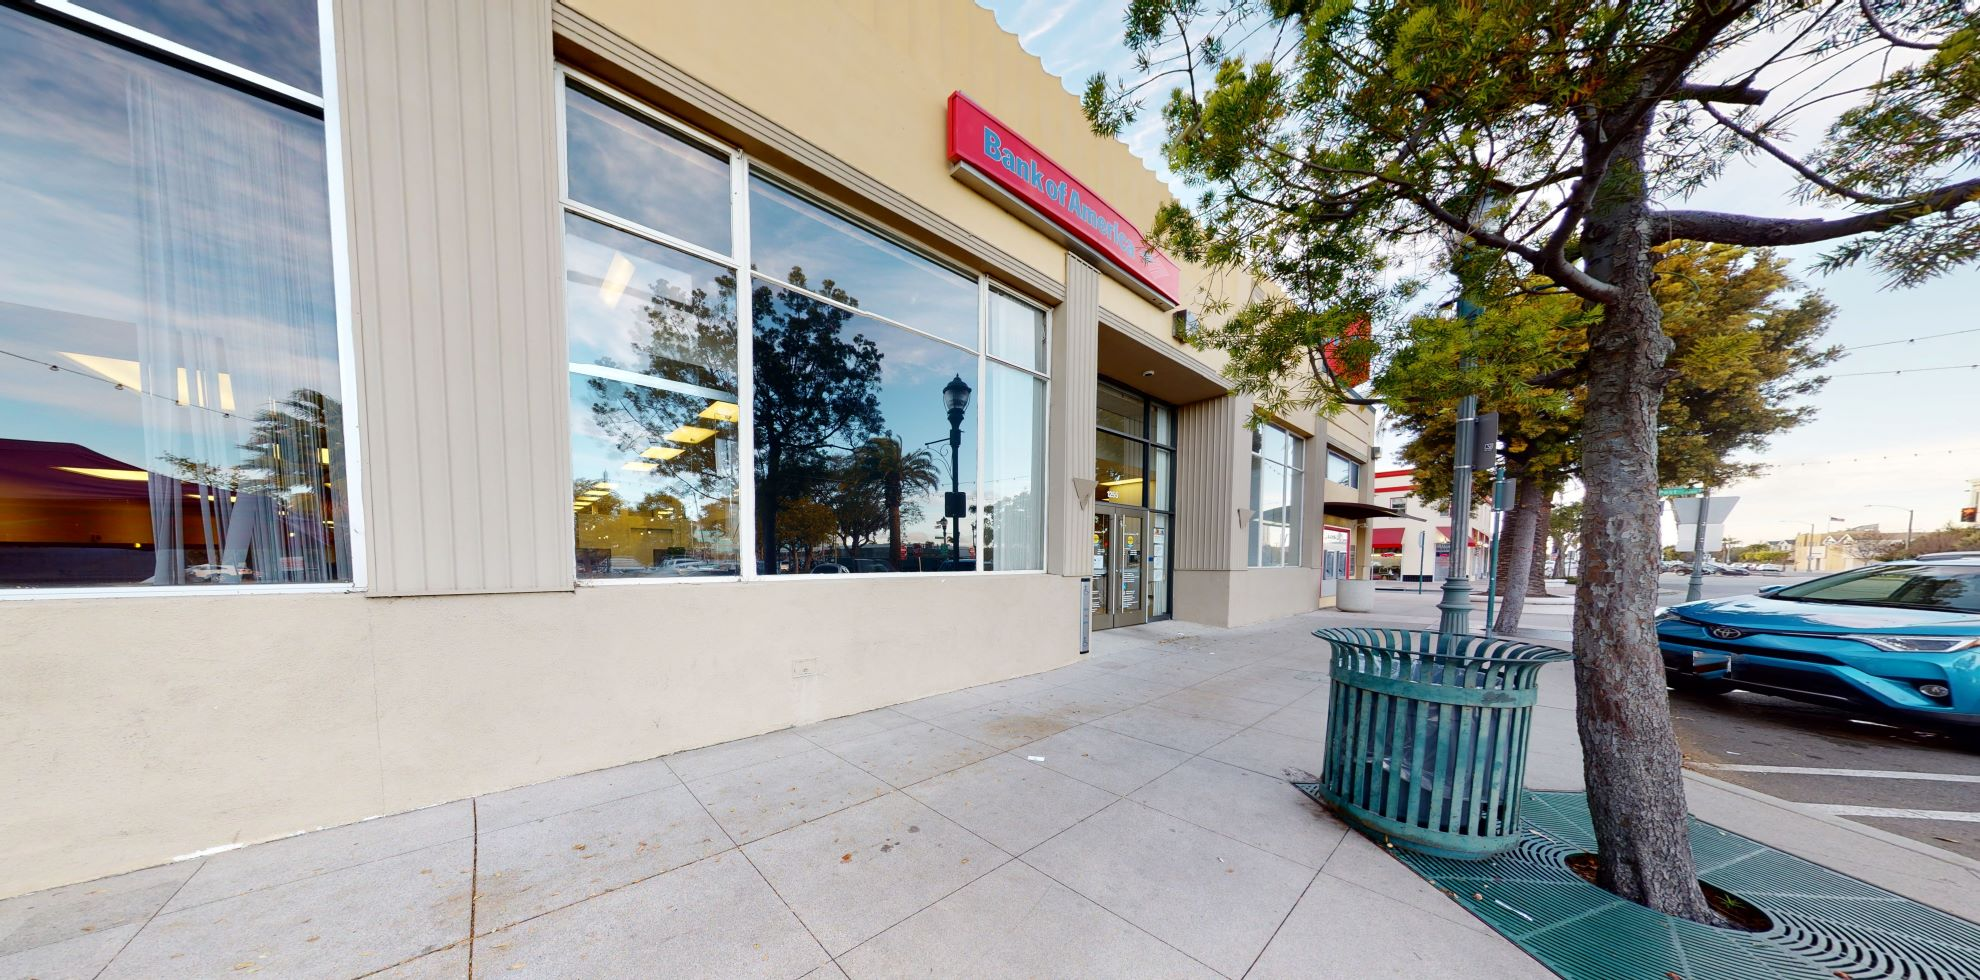 Bank of America financial center with walk-up ATM   1255 Sartori Ave, Torrance, CA 90501